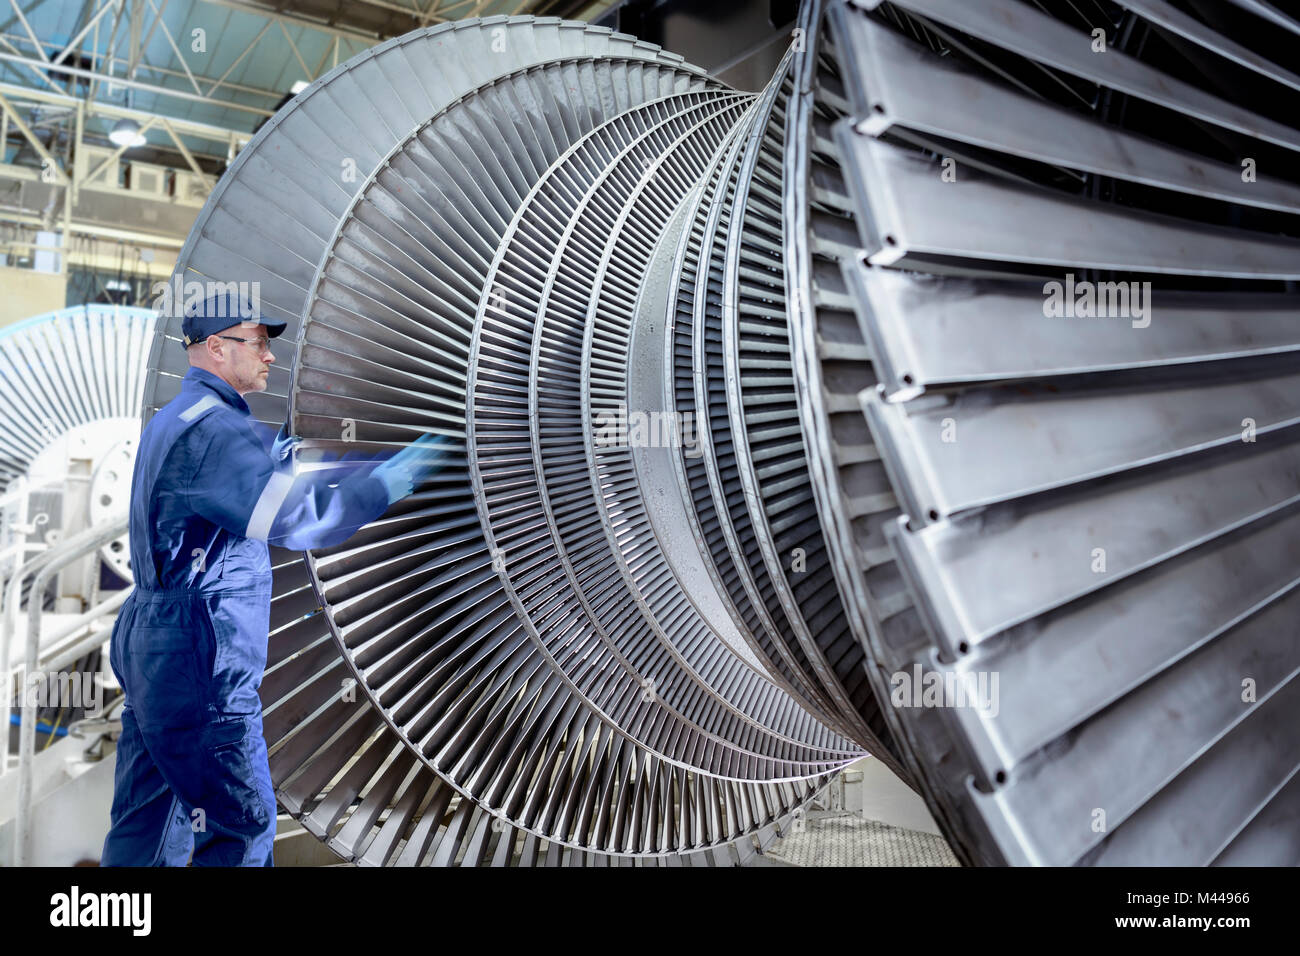 Engineer turning low pressure steam turbine during inspection in turbine maintenance factory - Stock Image